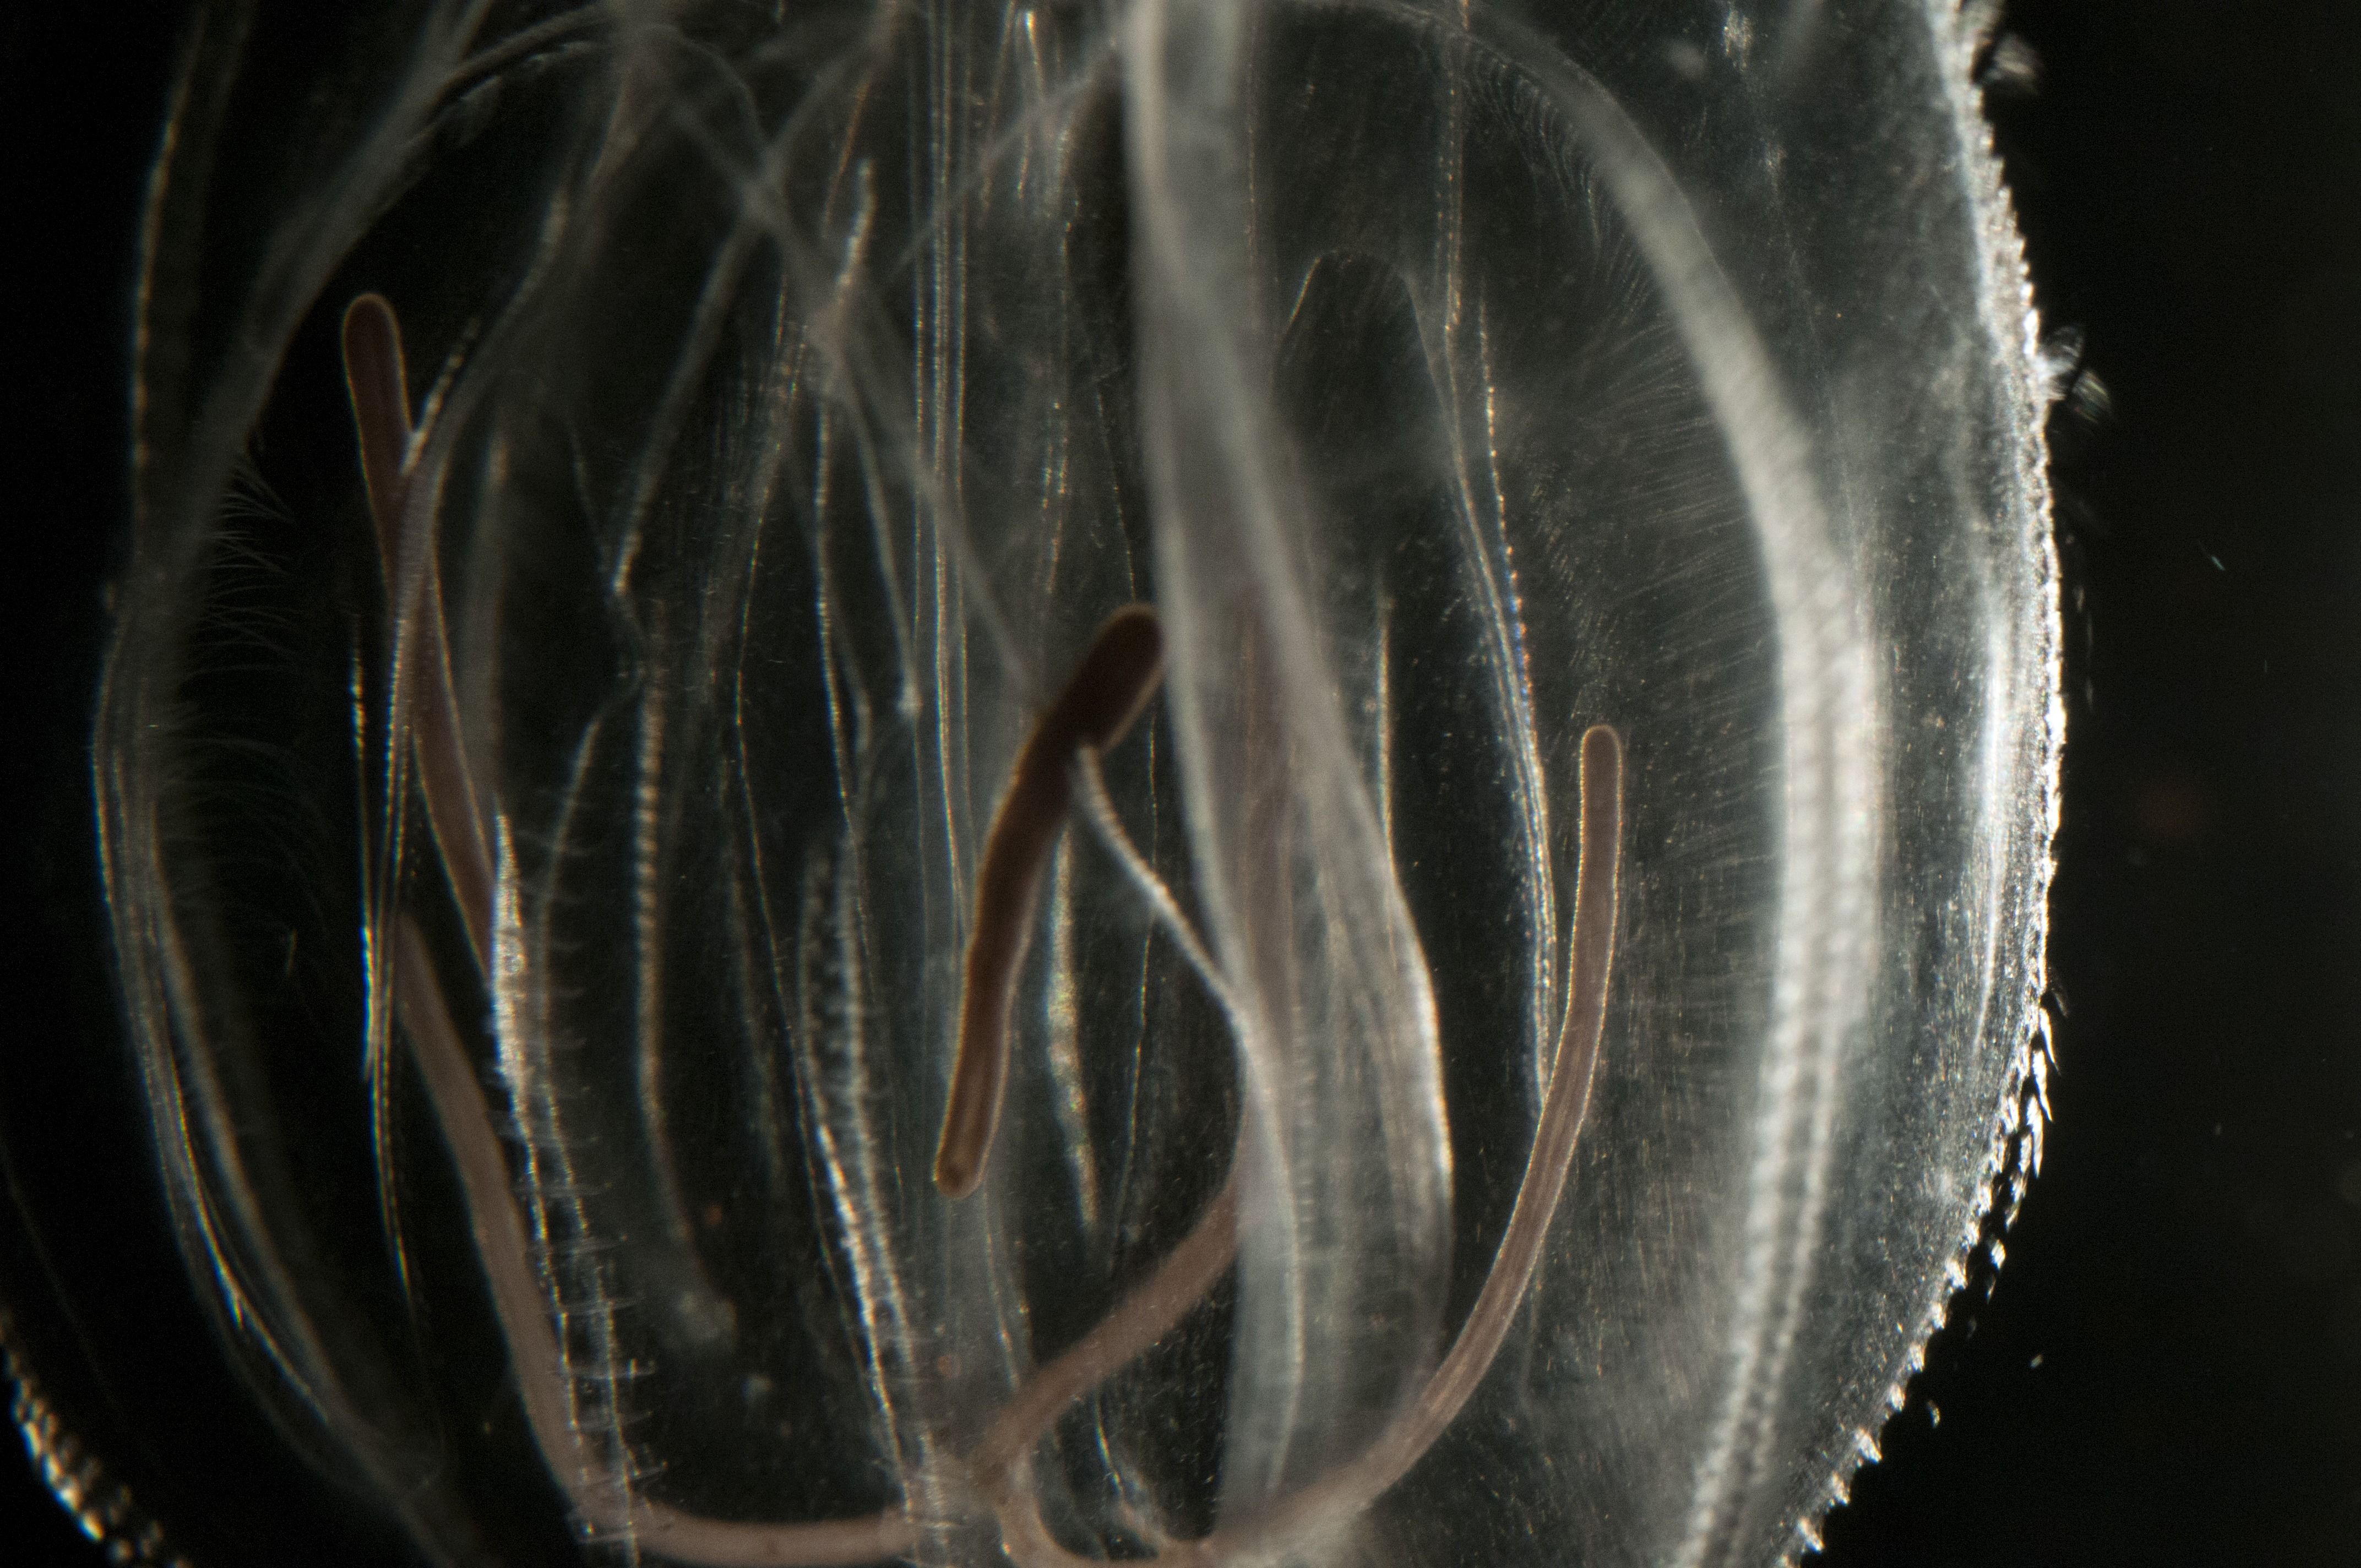 Image of Leidy's Comb Jelly